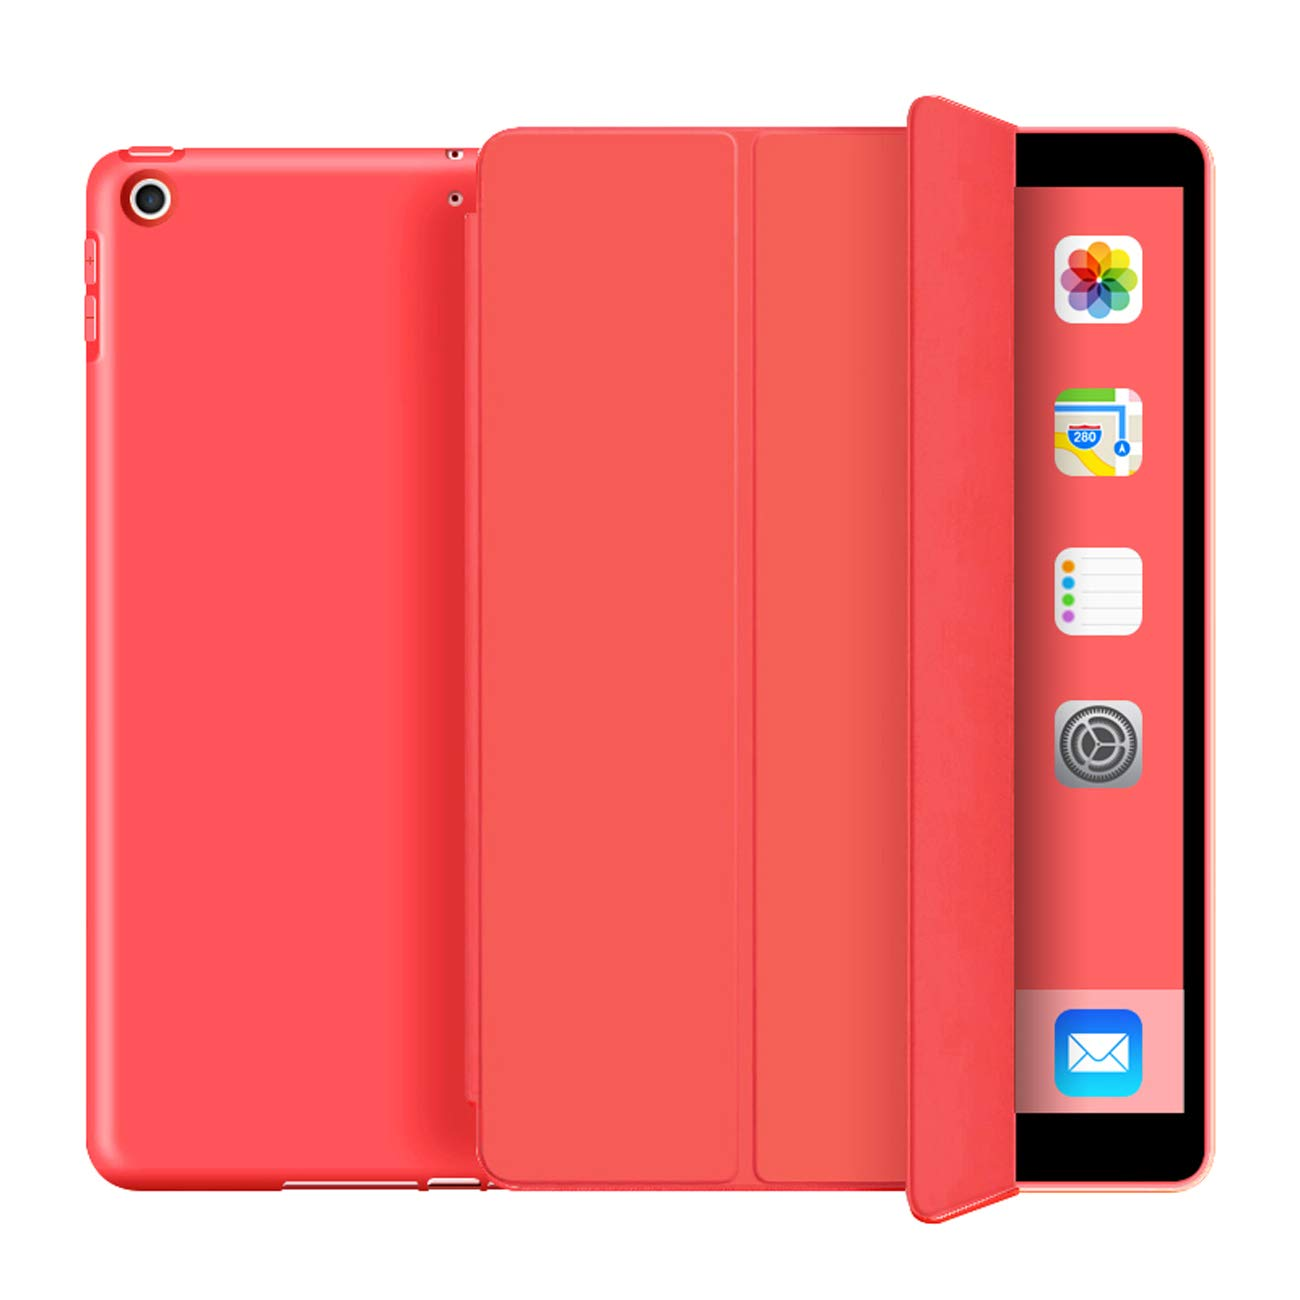 Kenke iPad Case 9.7 for 2017/2018,Ultra Slim Lightweight Smart Case TPU Soft Silicone Stand with Auto Sleep/Wake for iPad Cover 9.7 inch iPad 5th/6th Generation-Red